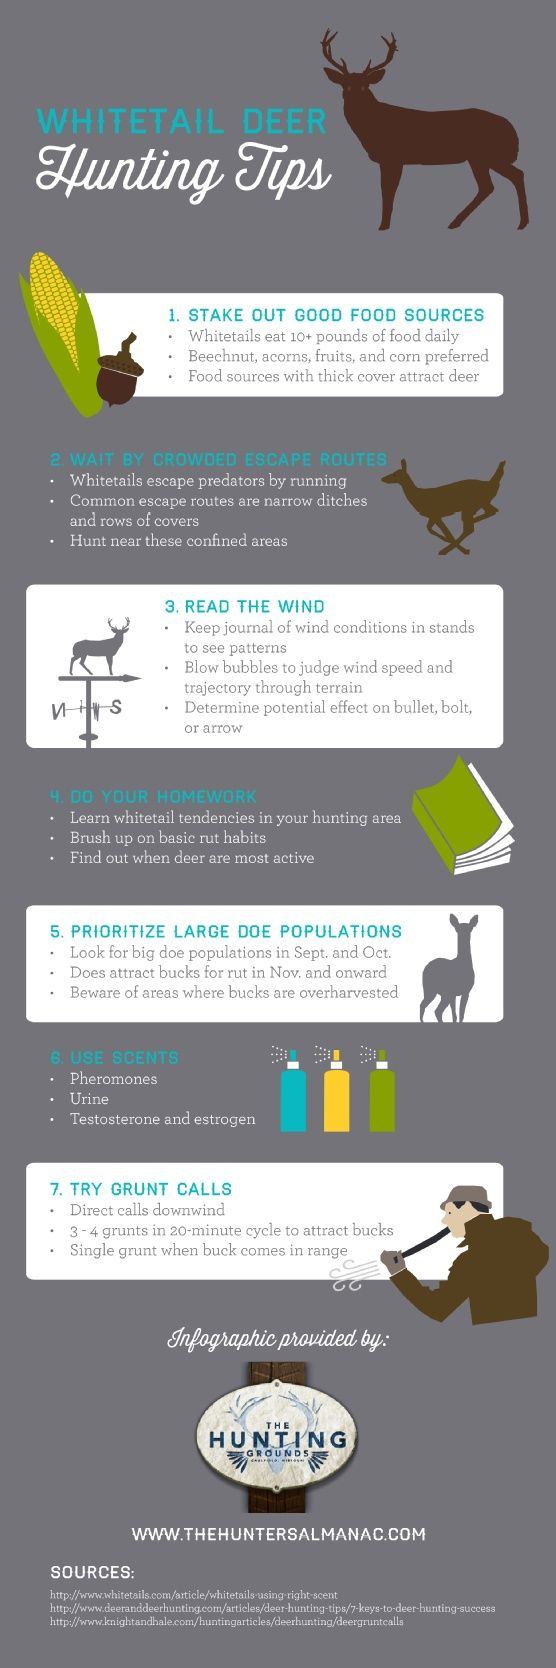 Whitetail Deer Hunting Tips - Cool Infographic with Hunting Tips for Deer | Hunting Tips and Gear, Survival Prepping Skills at survivallife.com